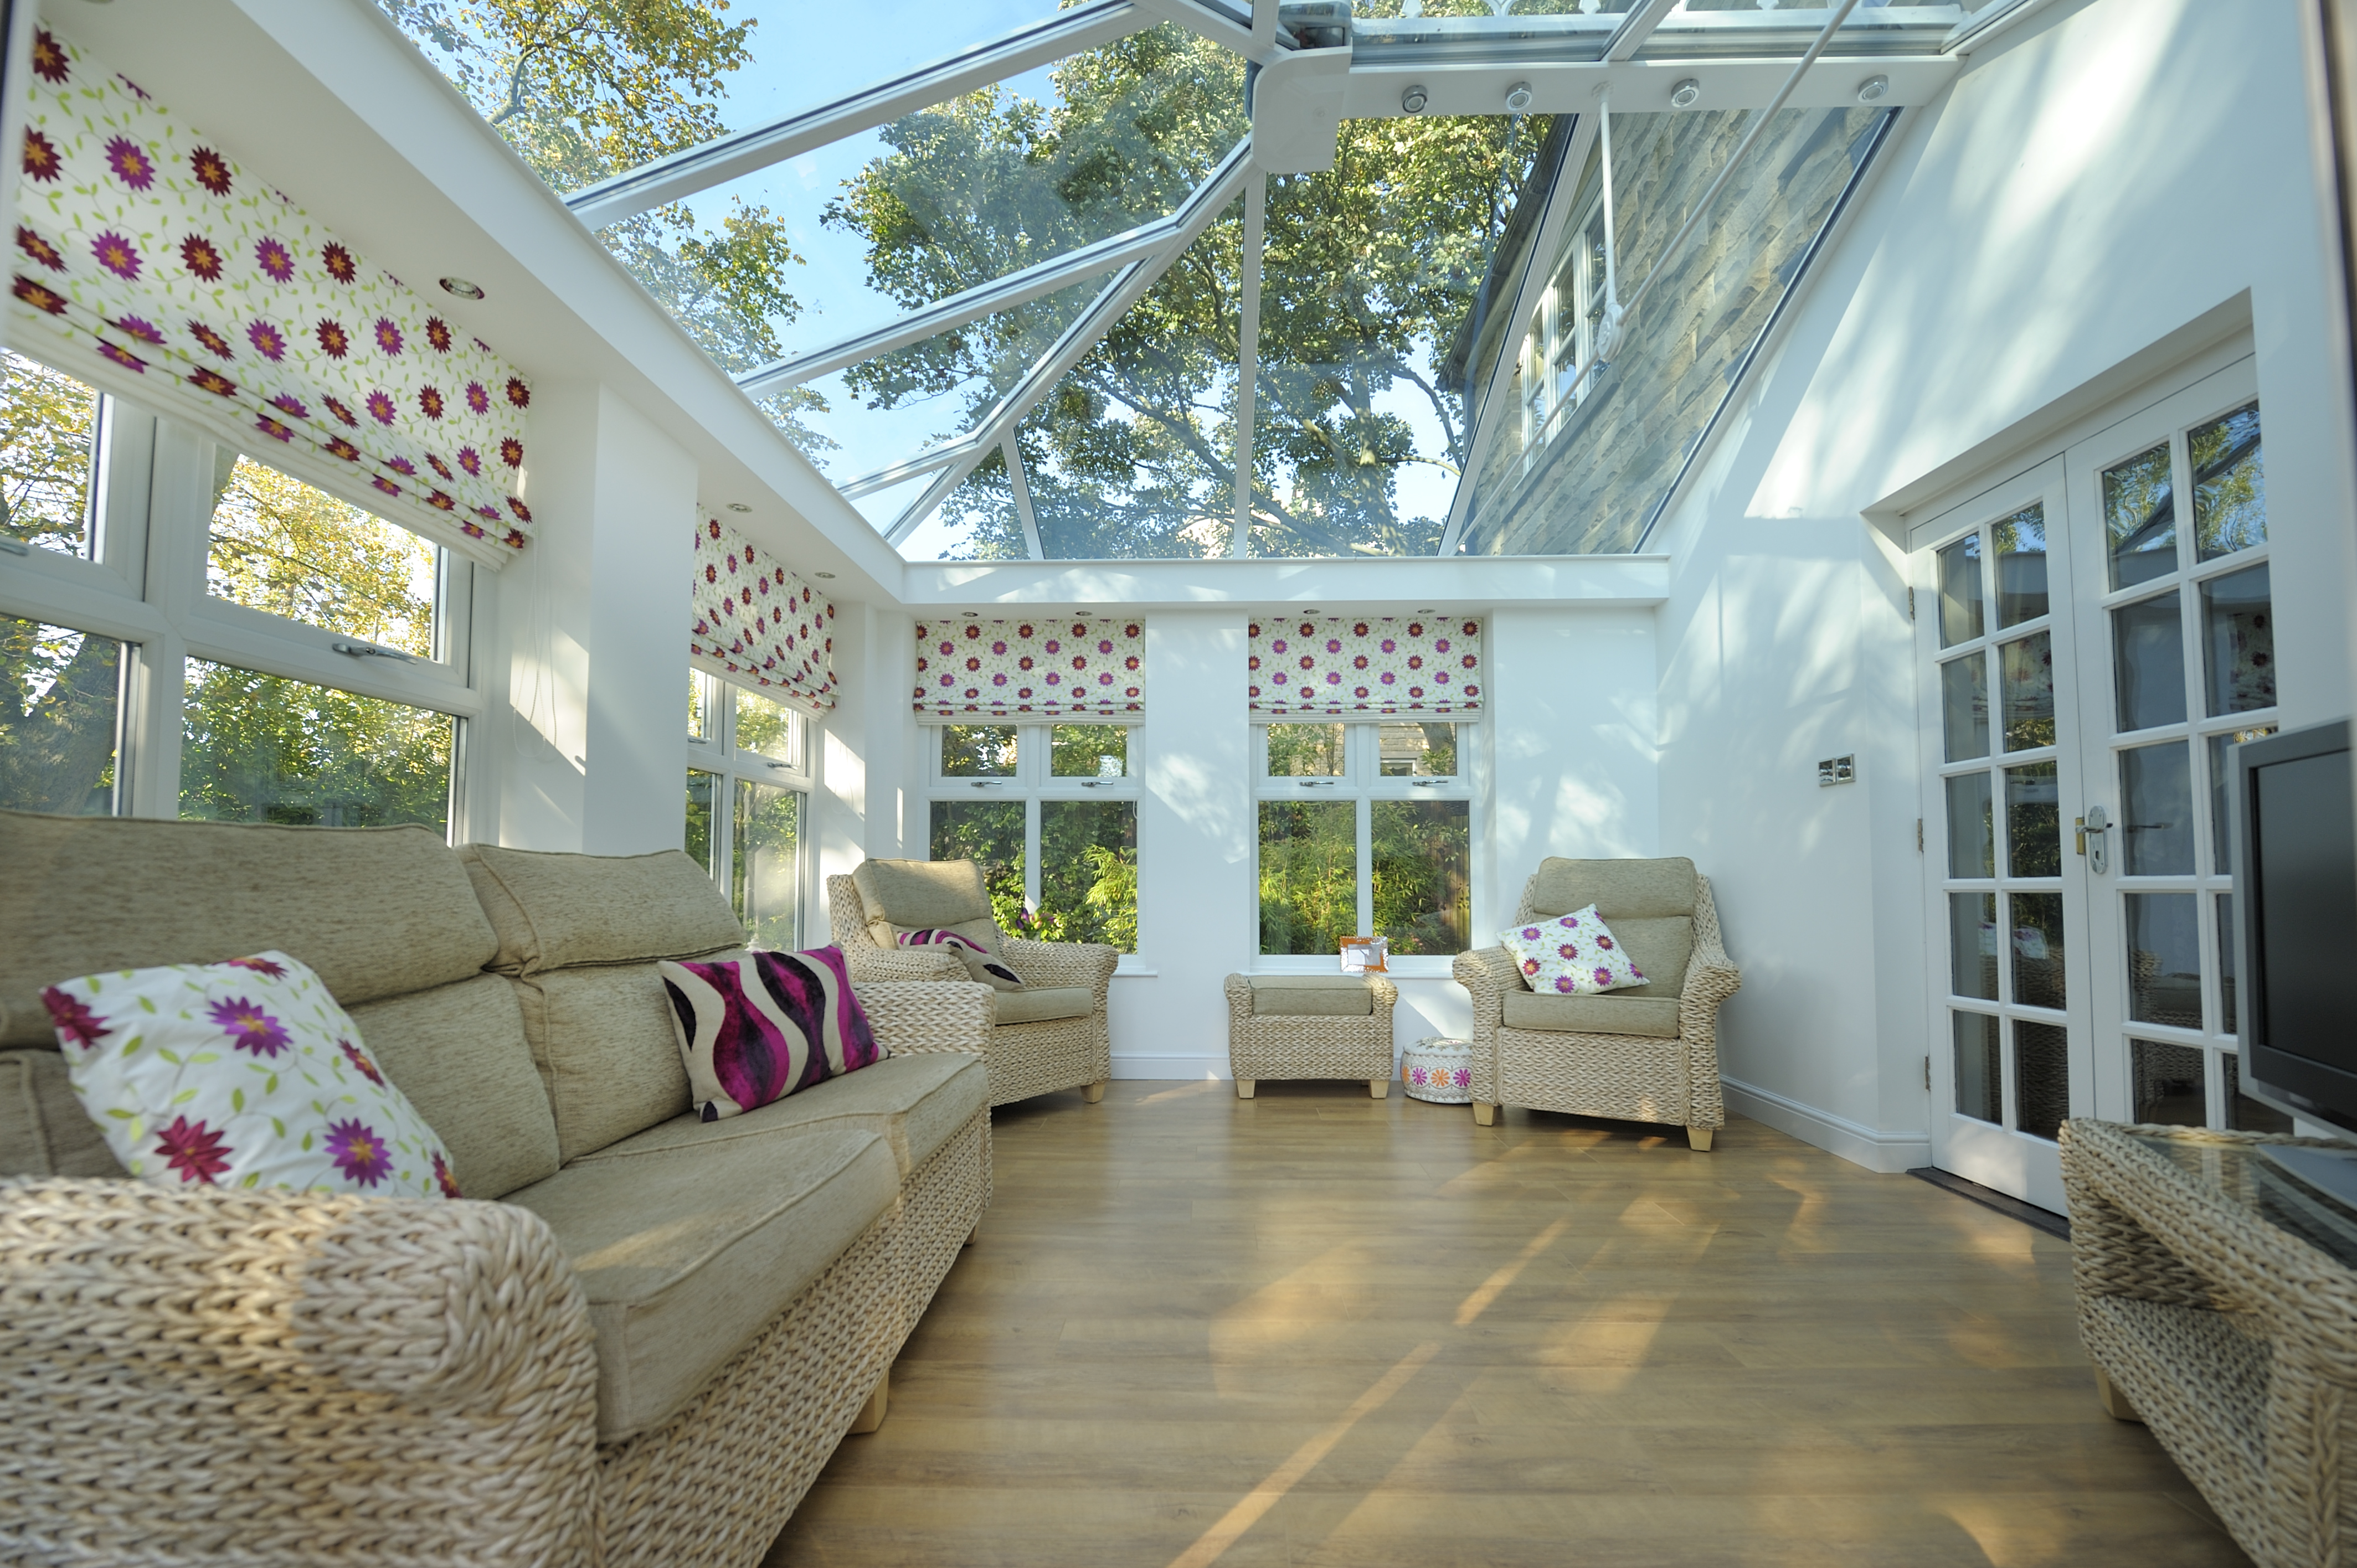 Inside a white conservatory with a glass roof.